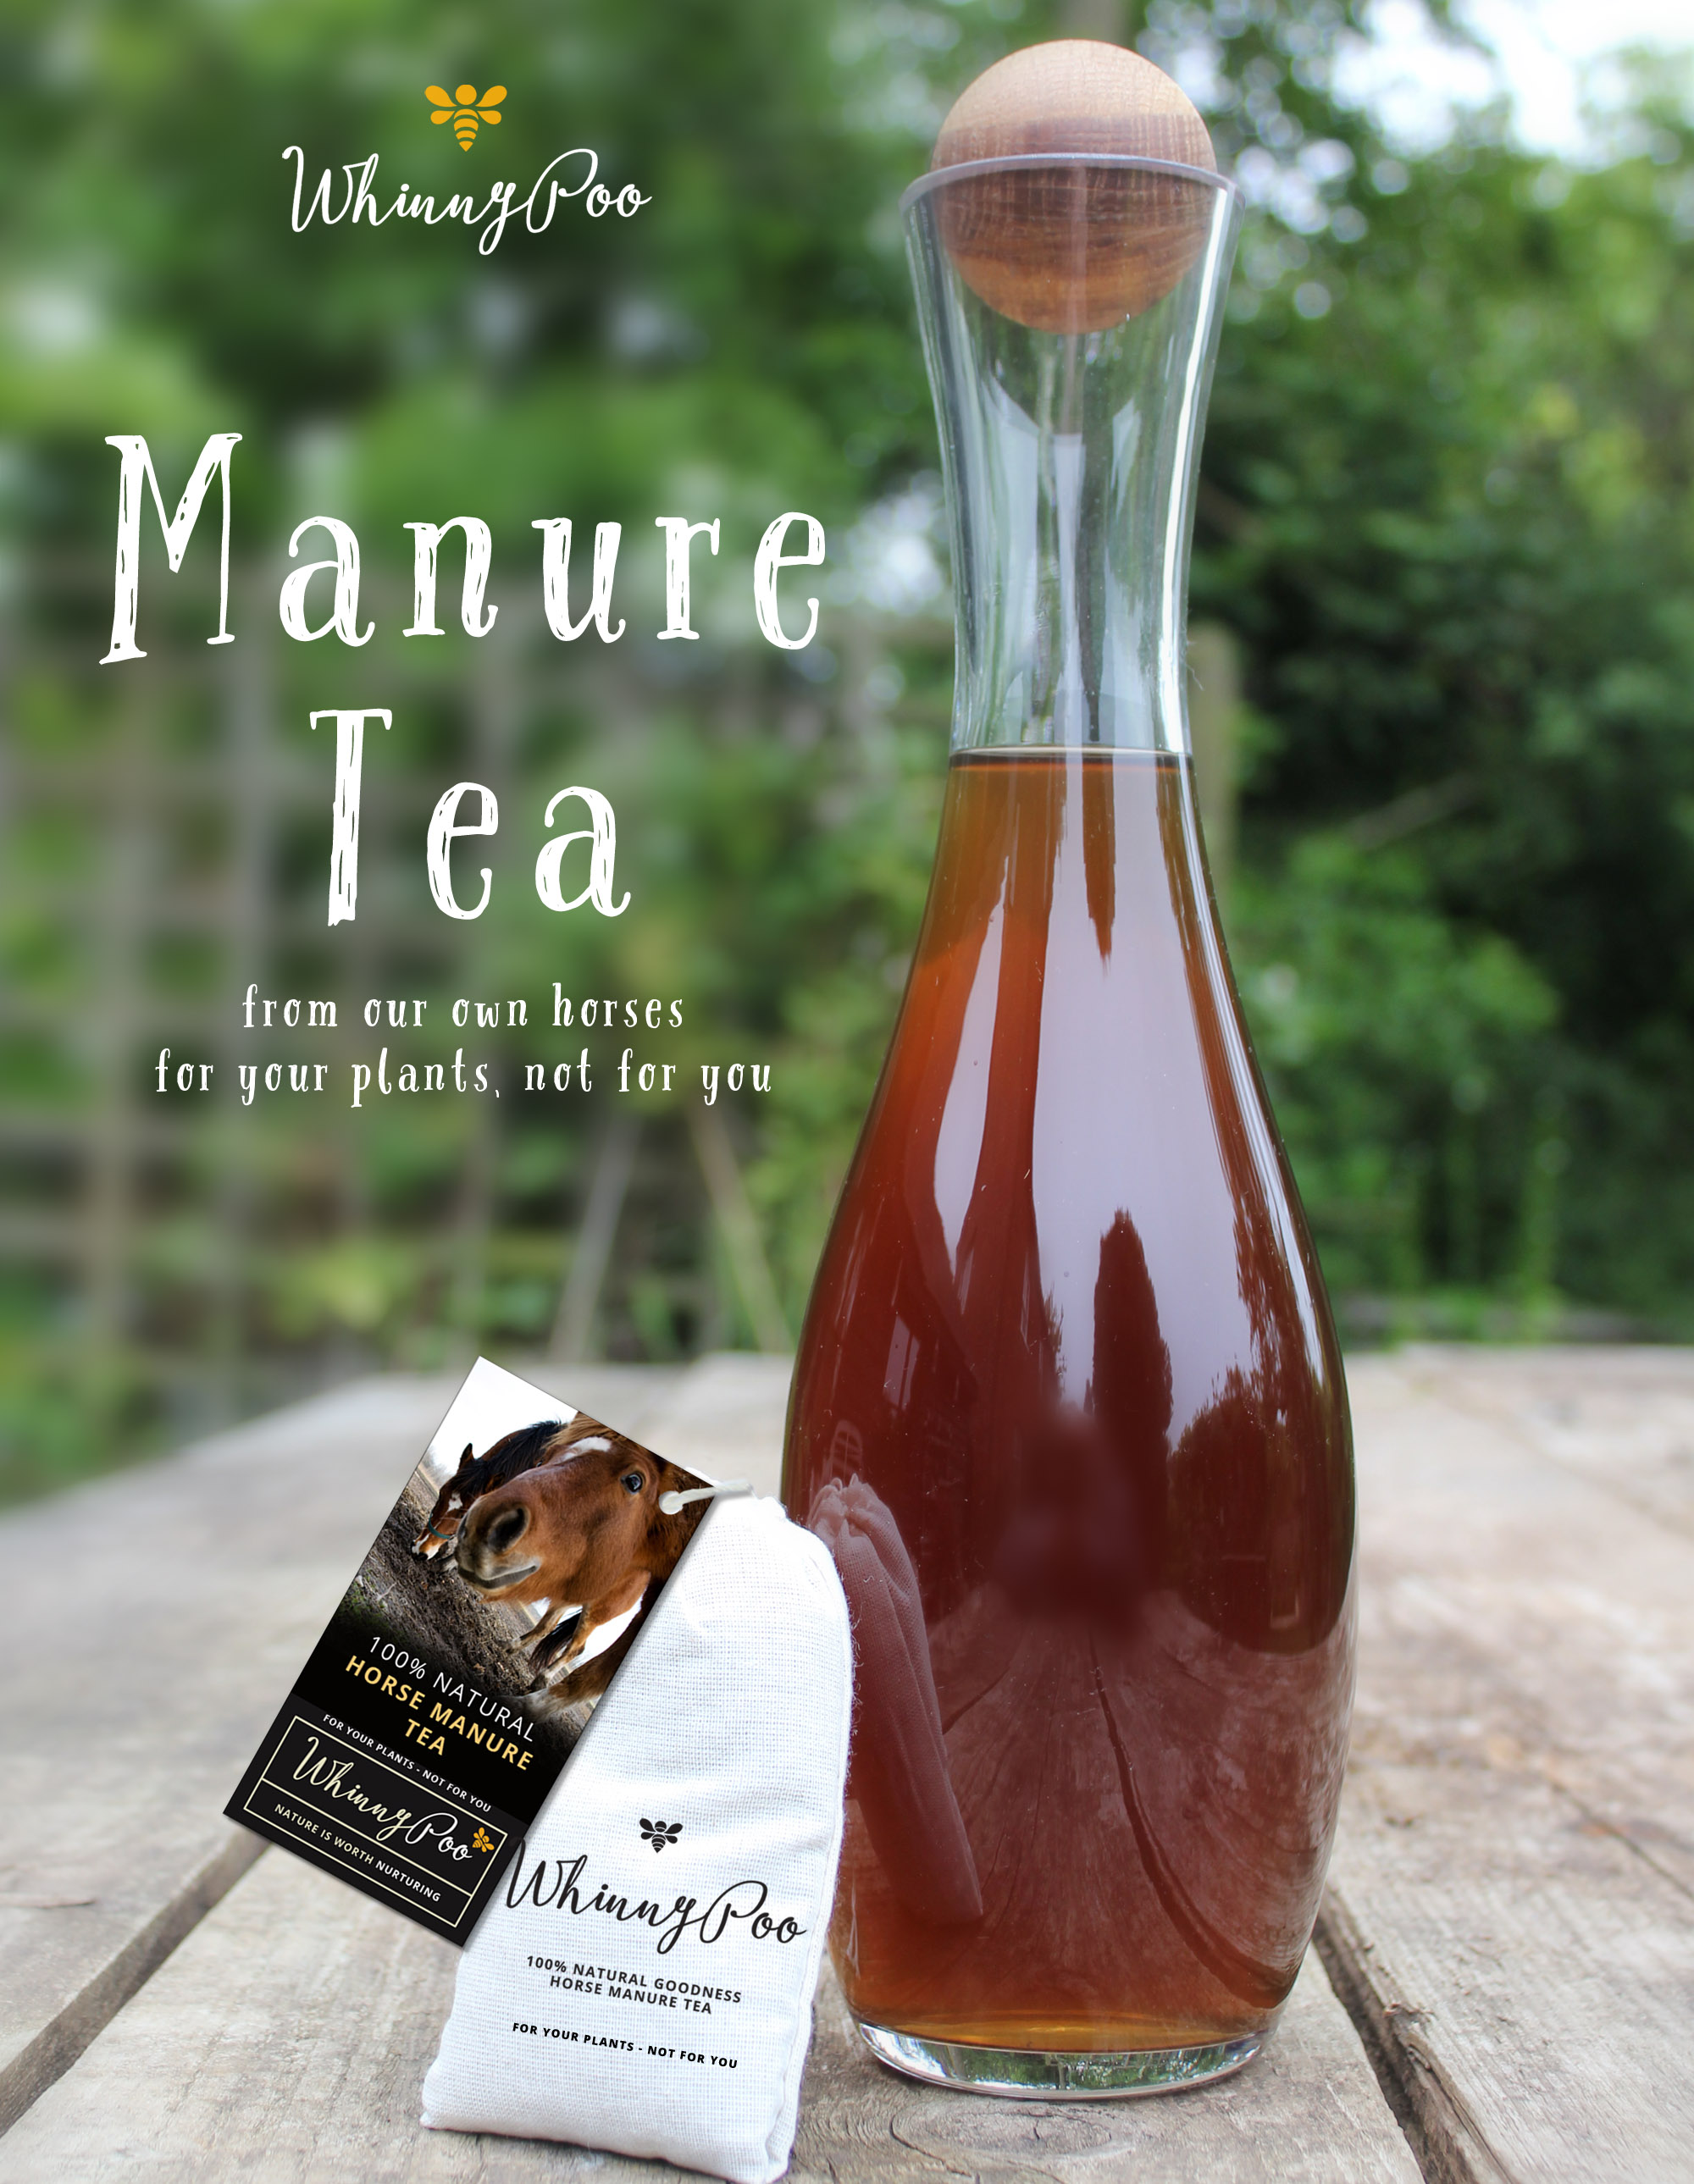 TIME FOR A BREW: POO TEA THAT IS